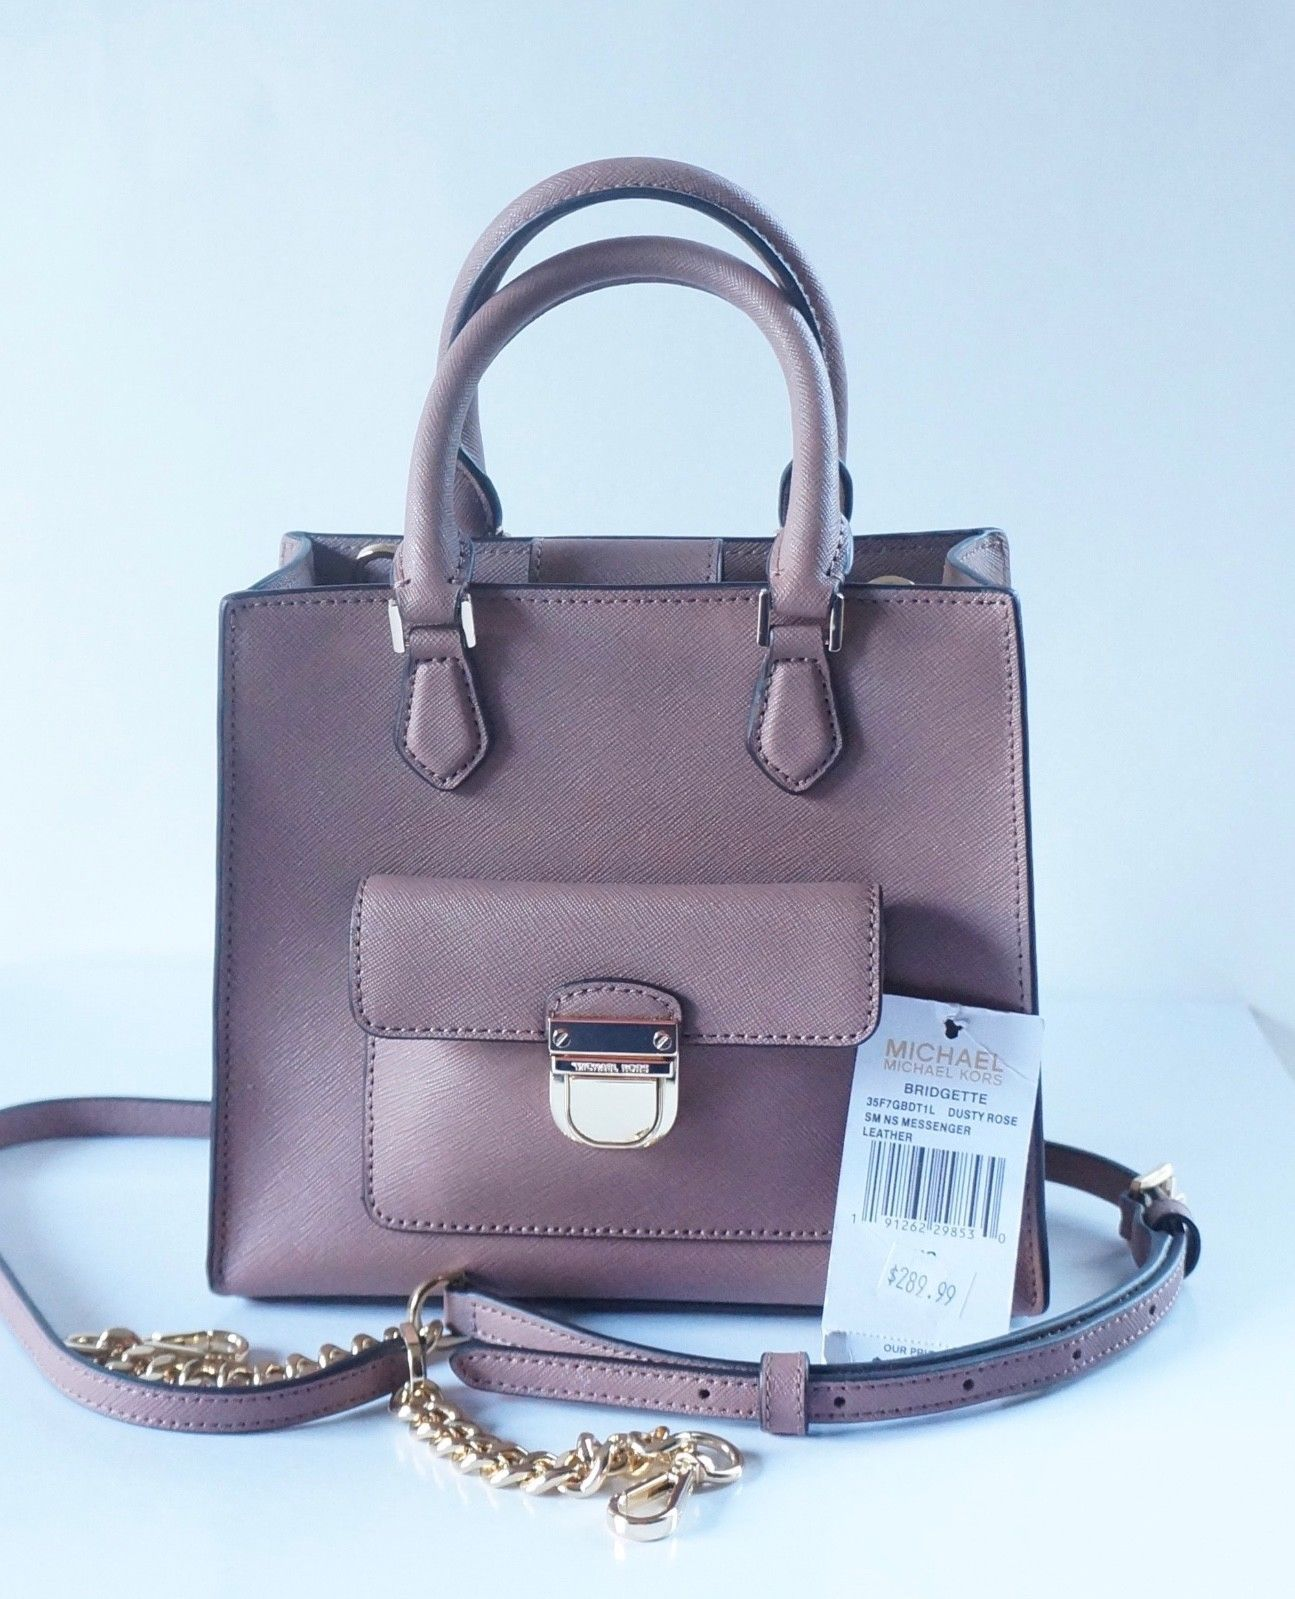 32357e7d68ced6 Nwt Michael Kors Bridgette Small Ns and 29 similar items